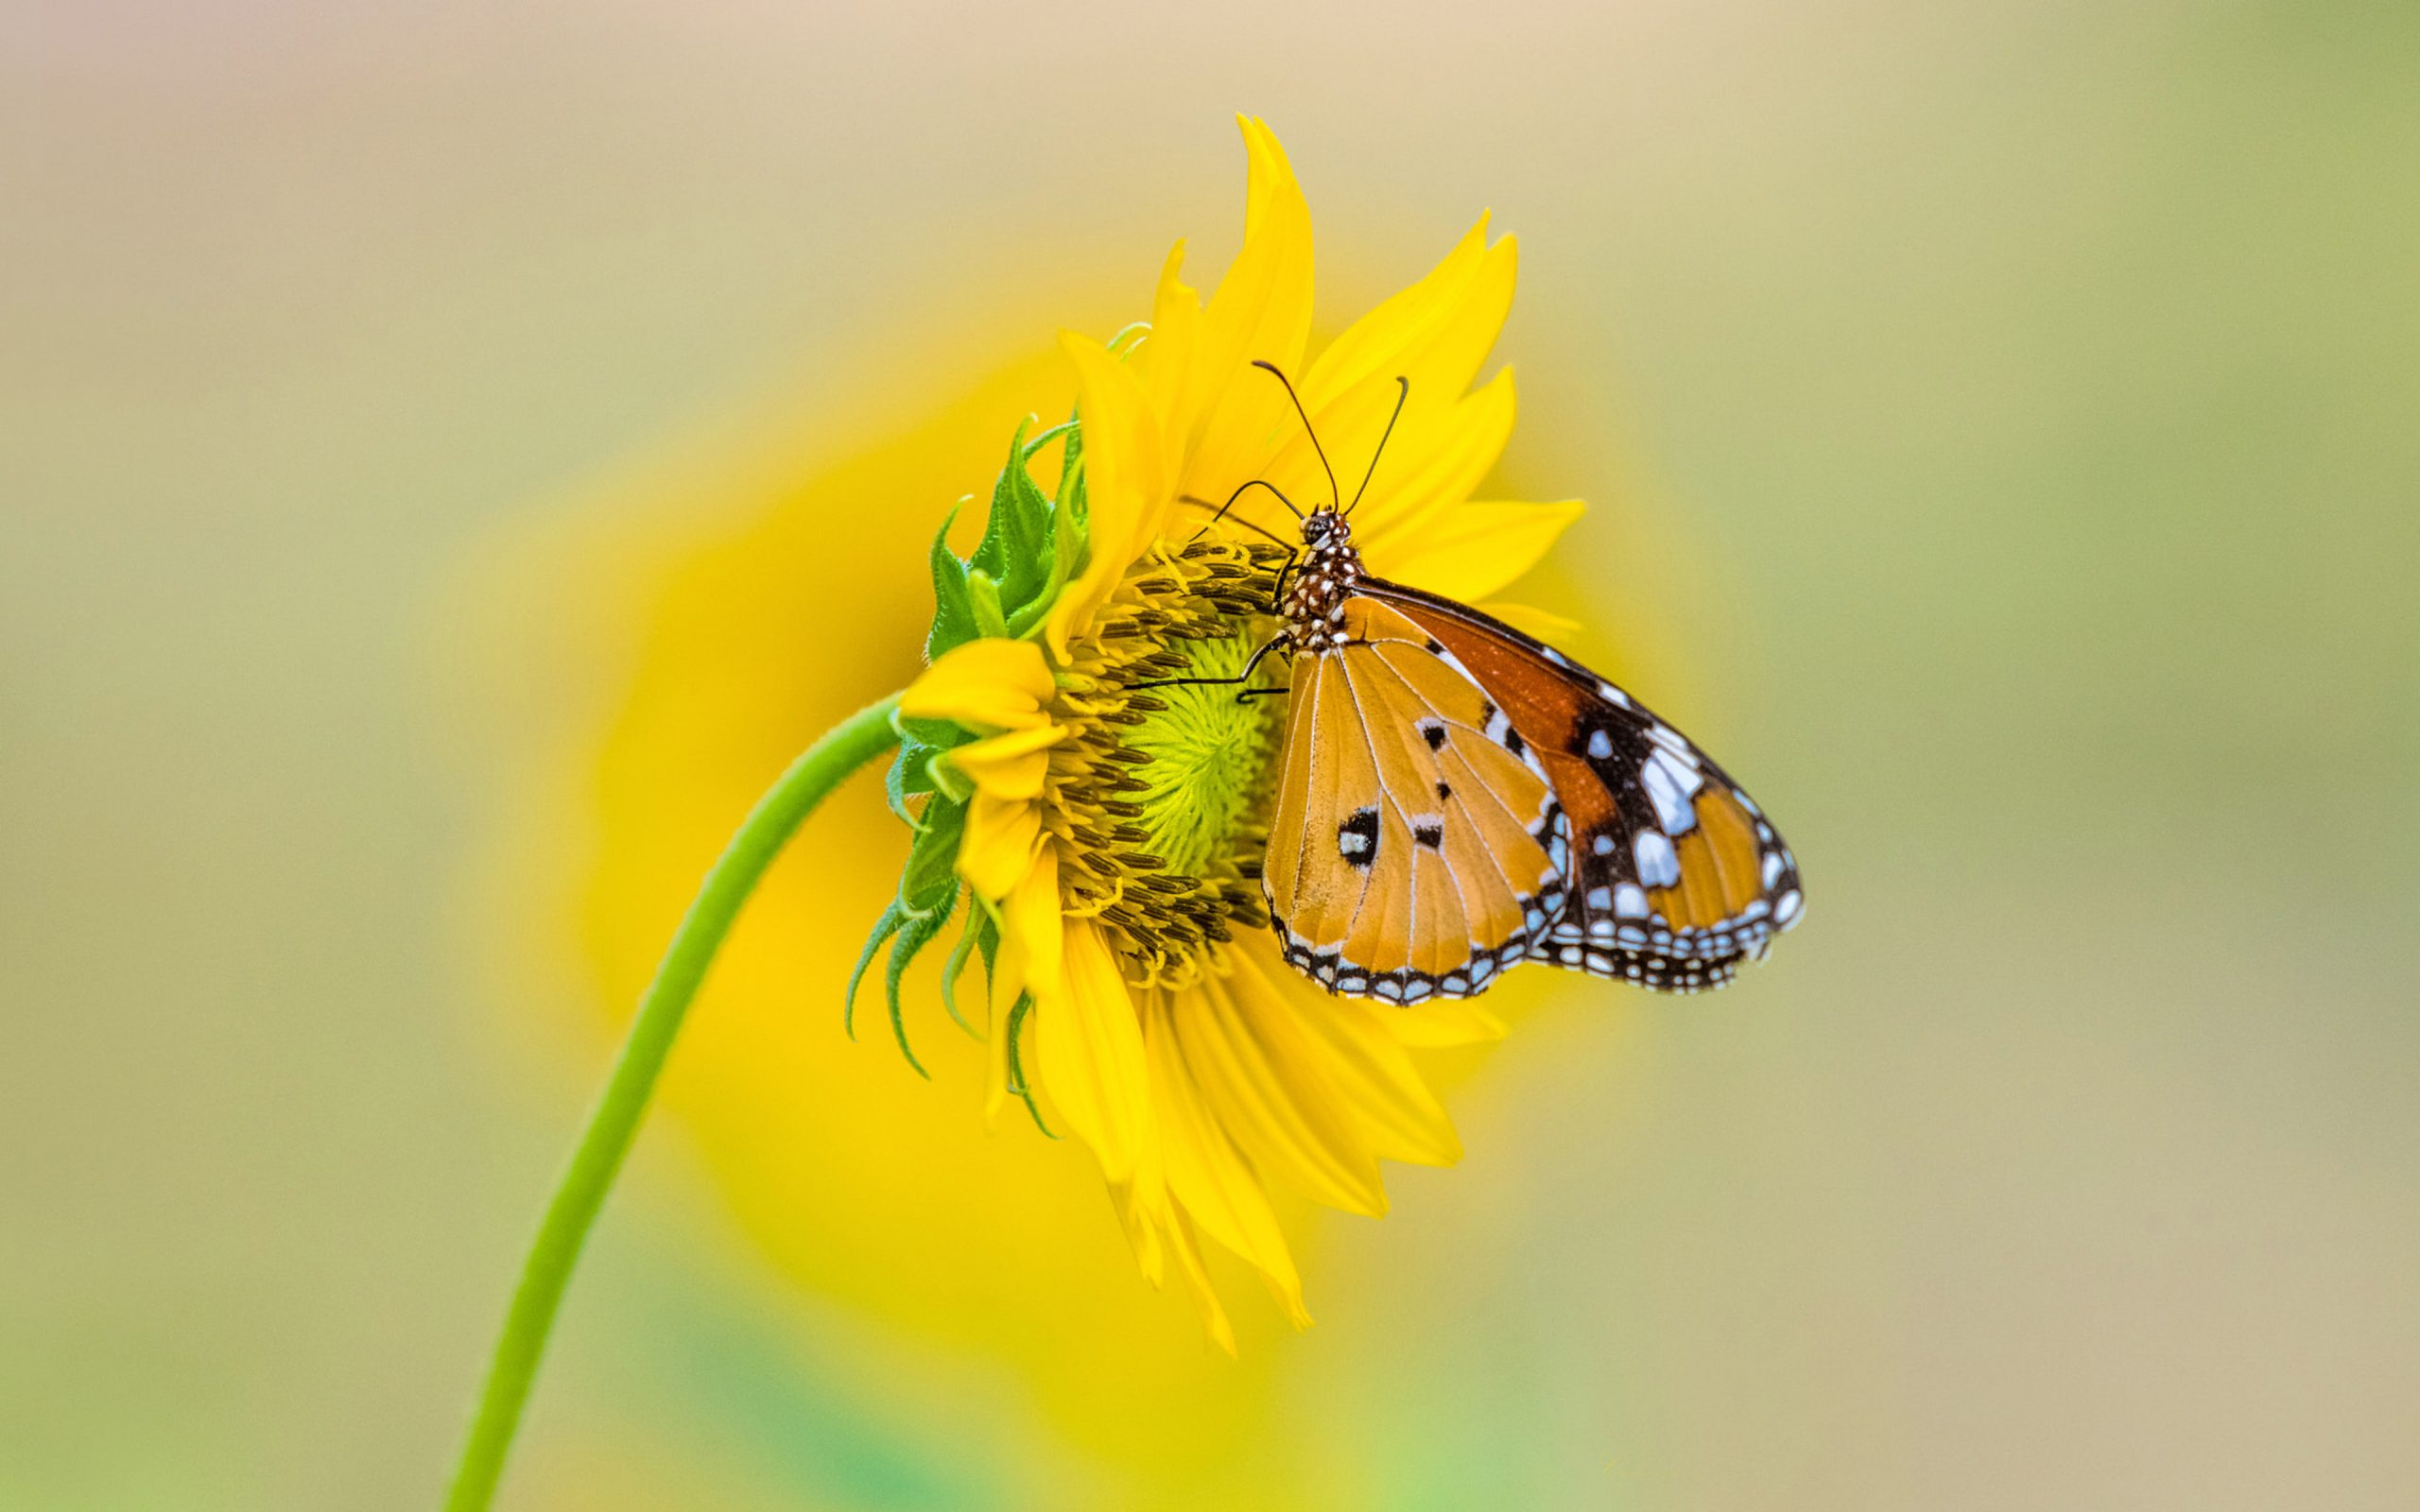 Insect Tiger Butterfly on yellow color from sunflower 4K Ultra HD TV Wallpaper for Desktop Laptop Tablet And Mobile Phones 3840x2400